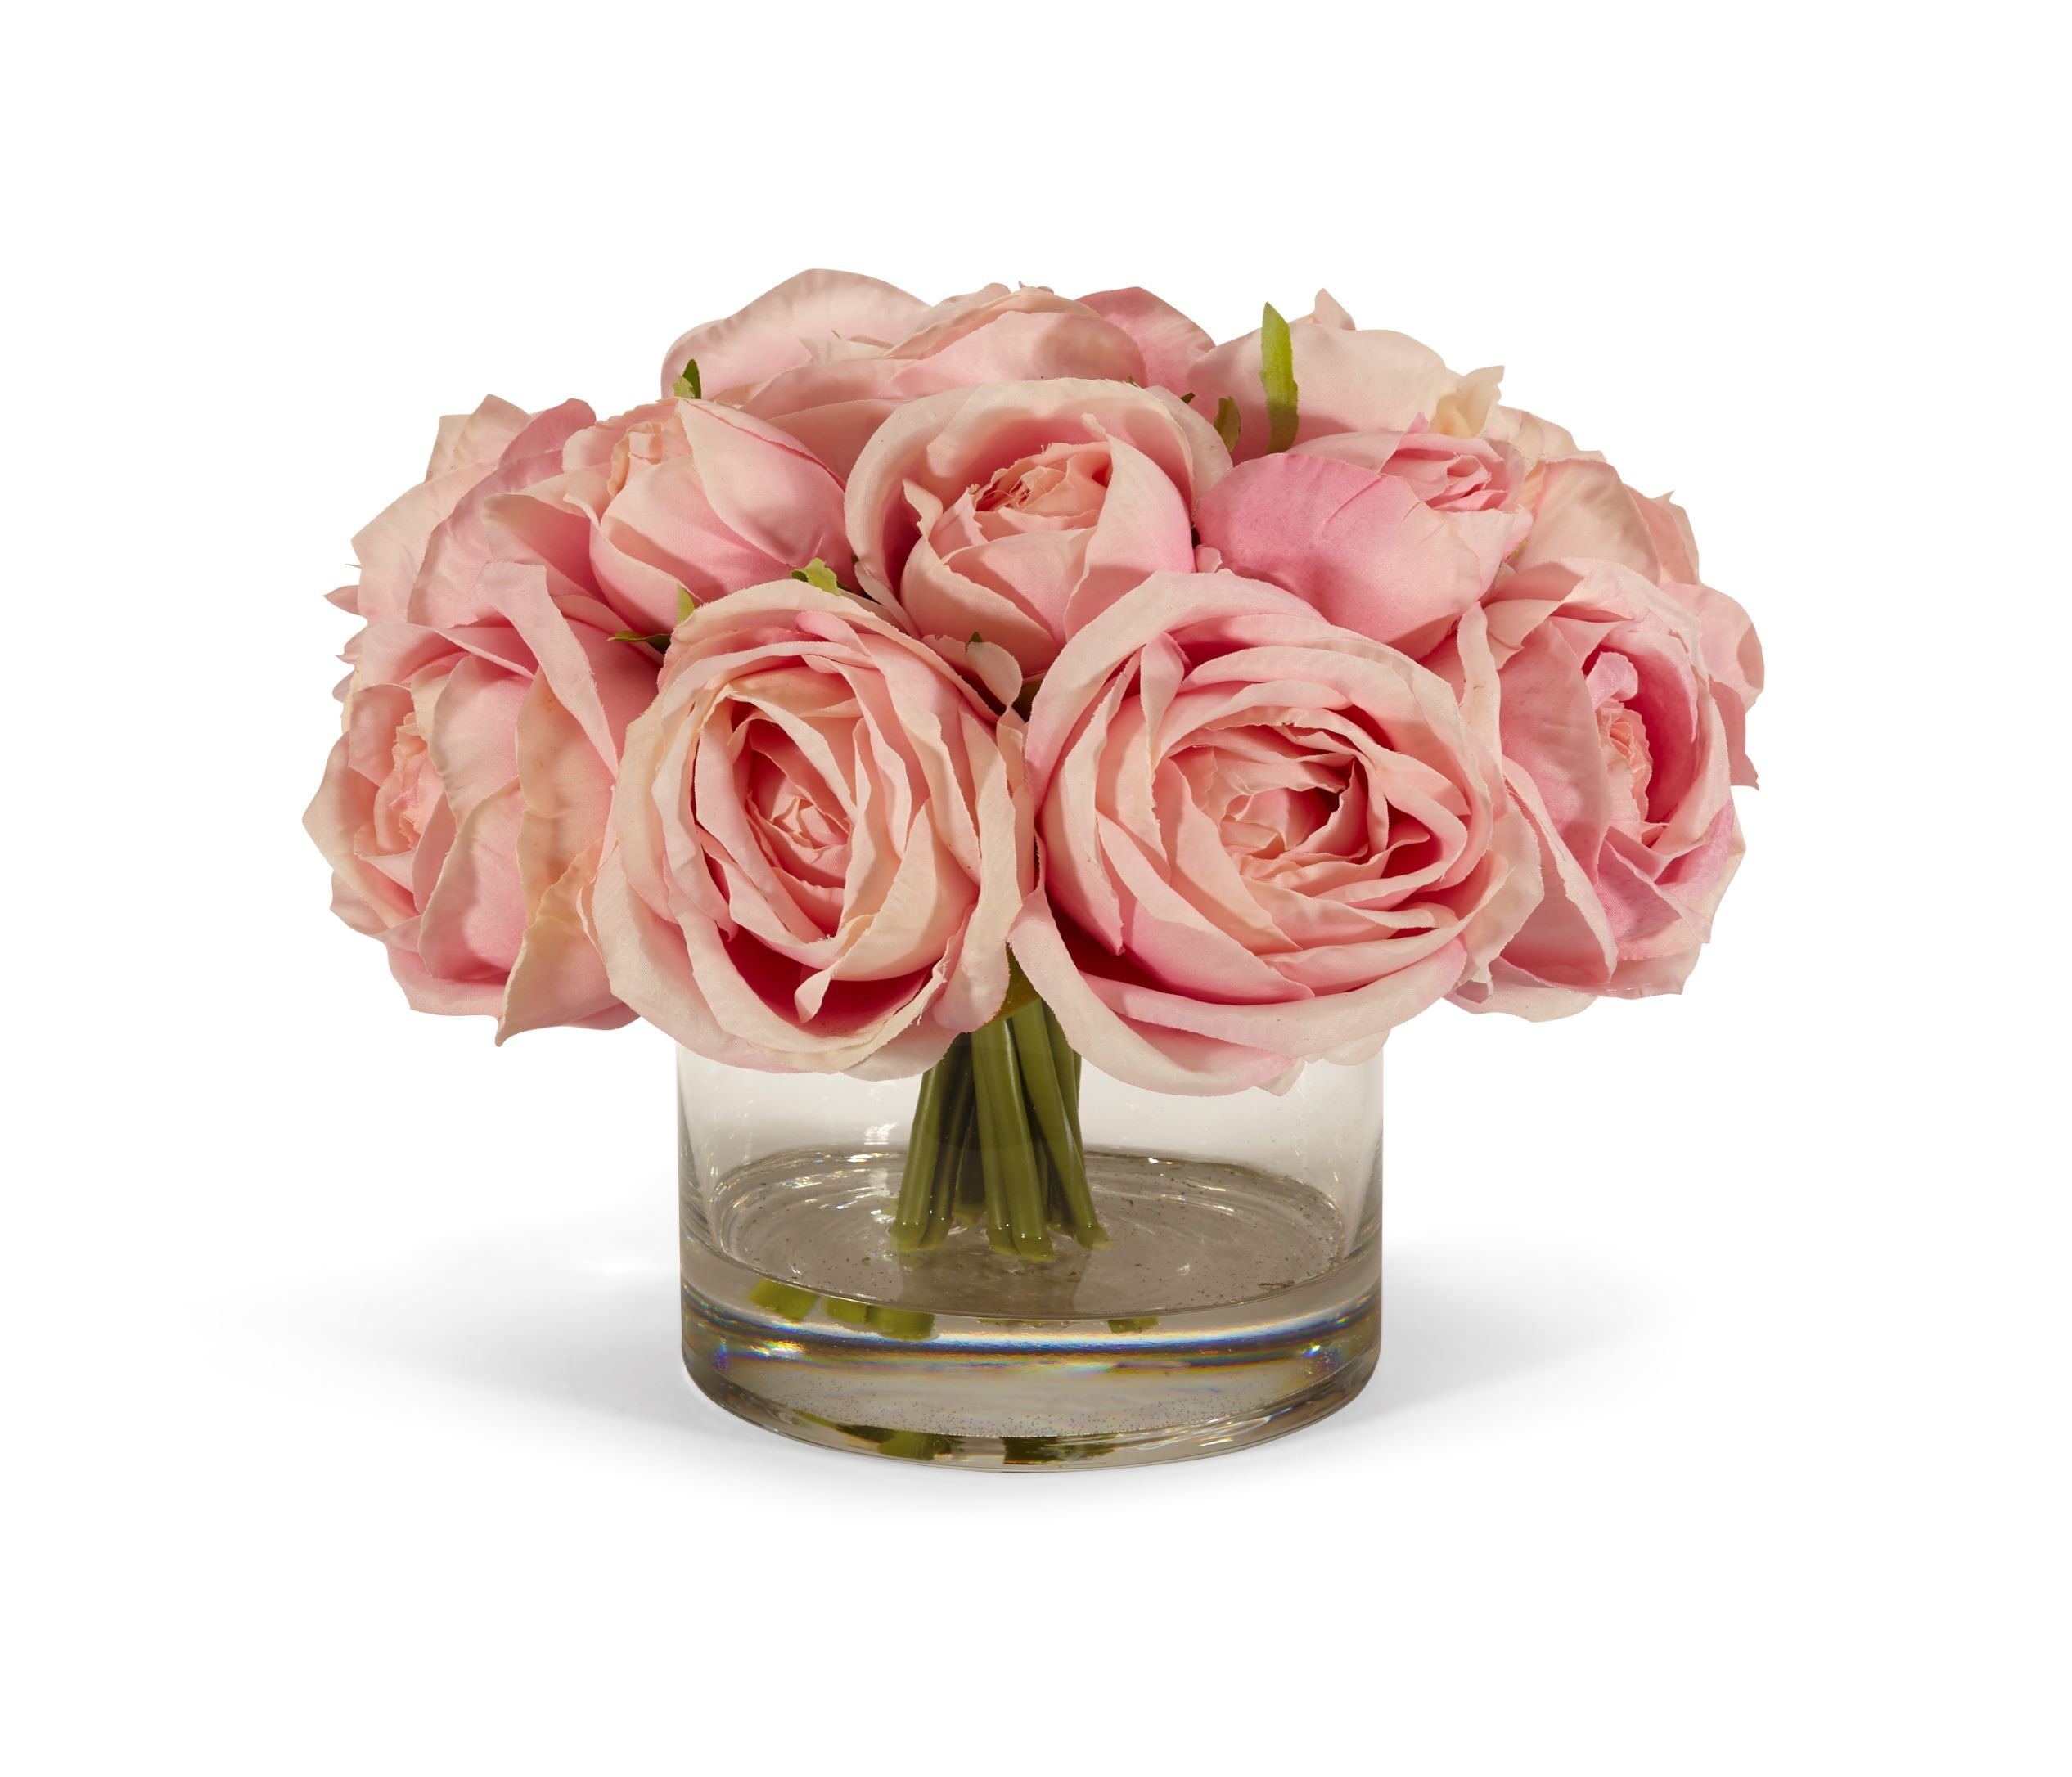 Rose Bouquet in Clear Glass Vase - PINK